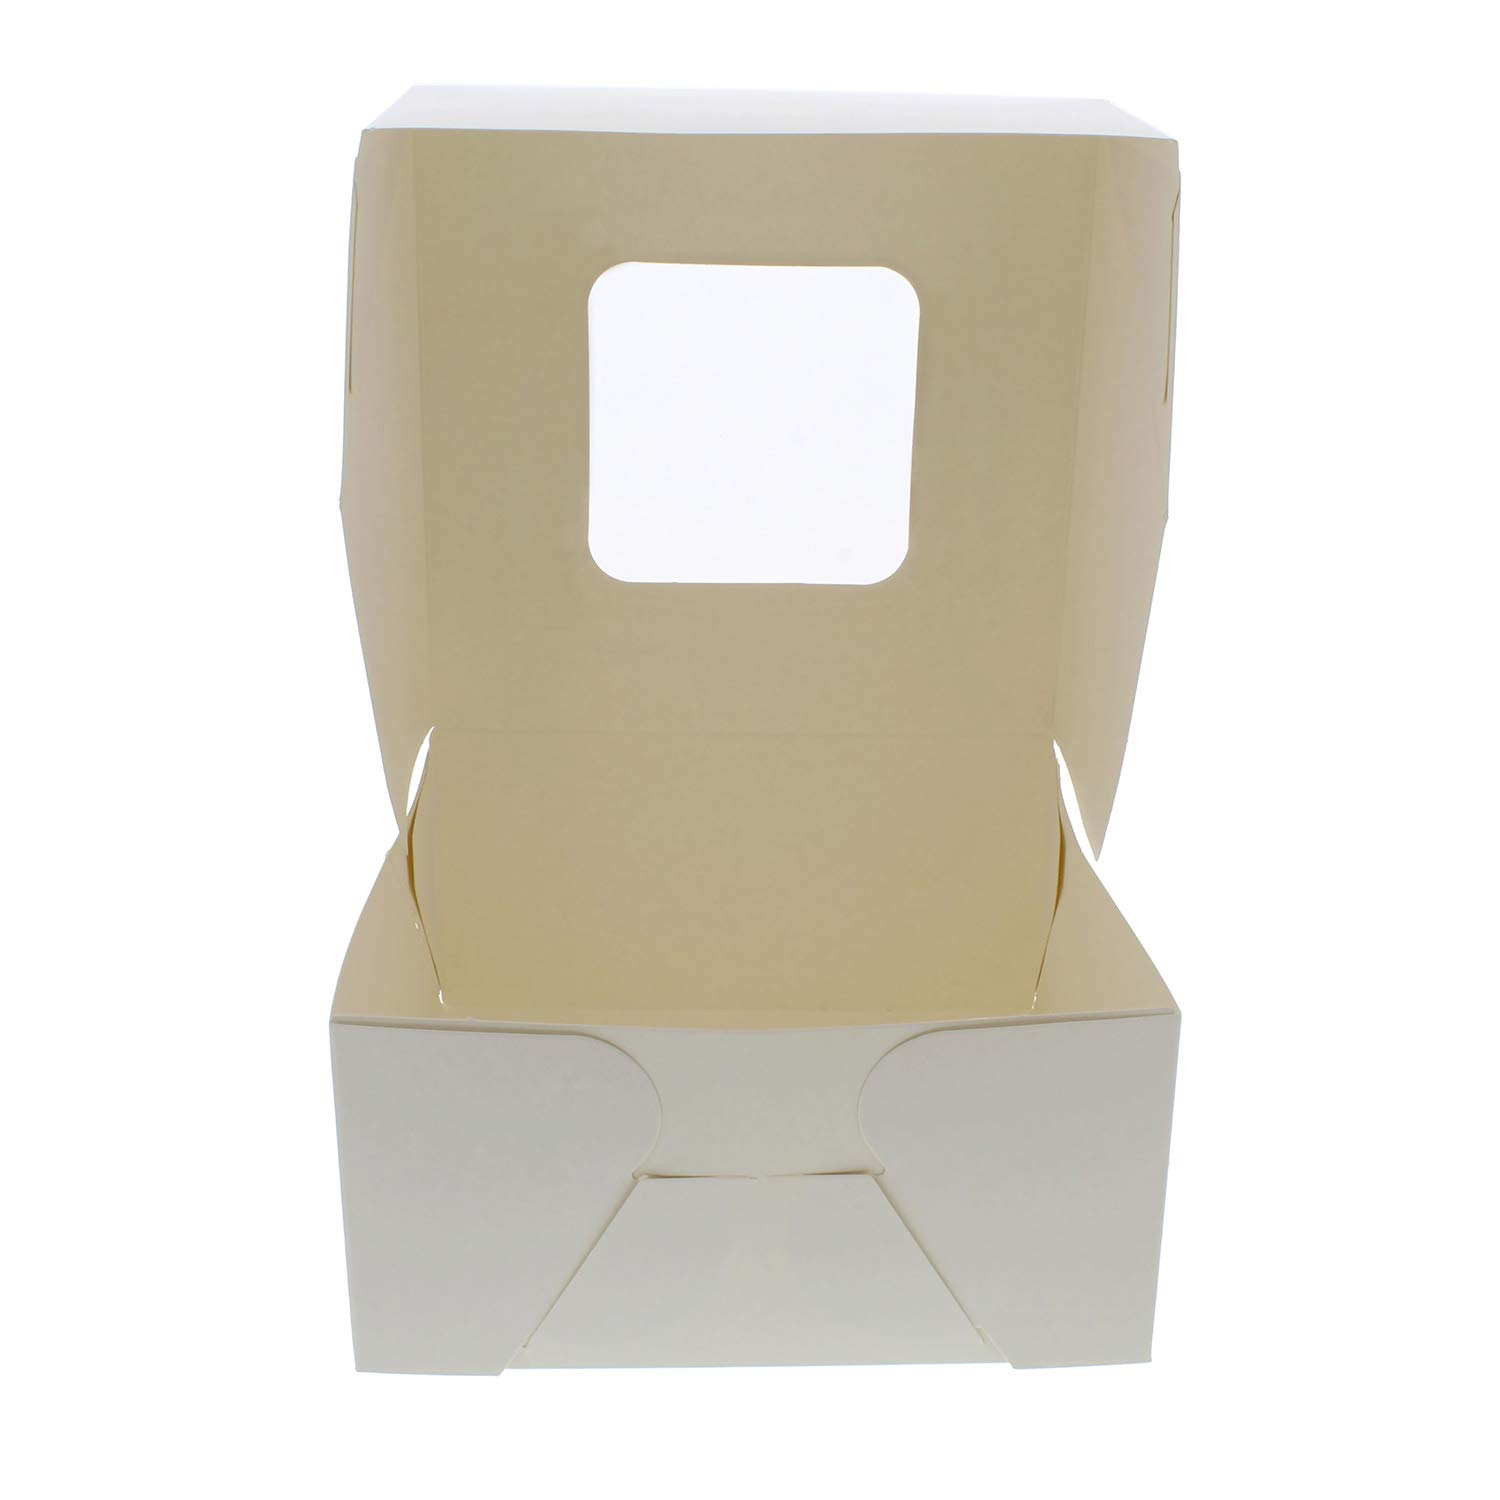 SpecialT White Bakery Boxes with Window, 200pk - 6'' x 6'' Inch Cake Boxes, Party Favor Boxes, Candy Boxes, Dessert Boxes by SpecialT (Image #4)